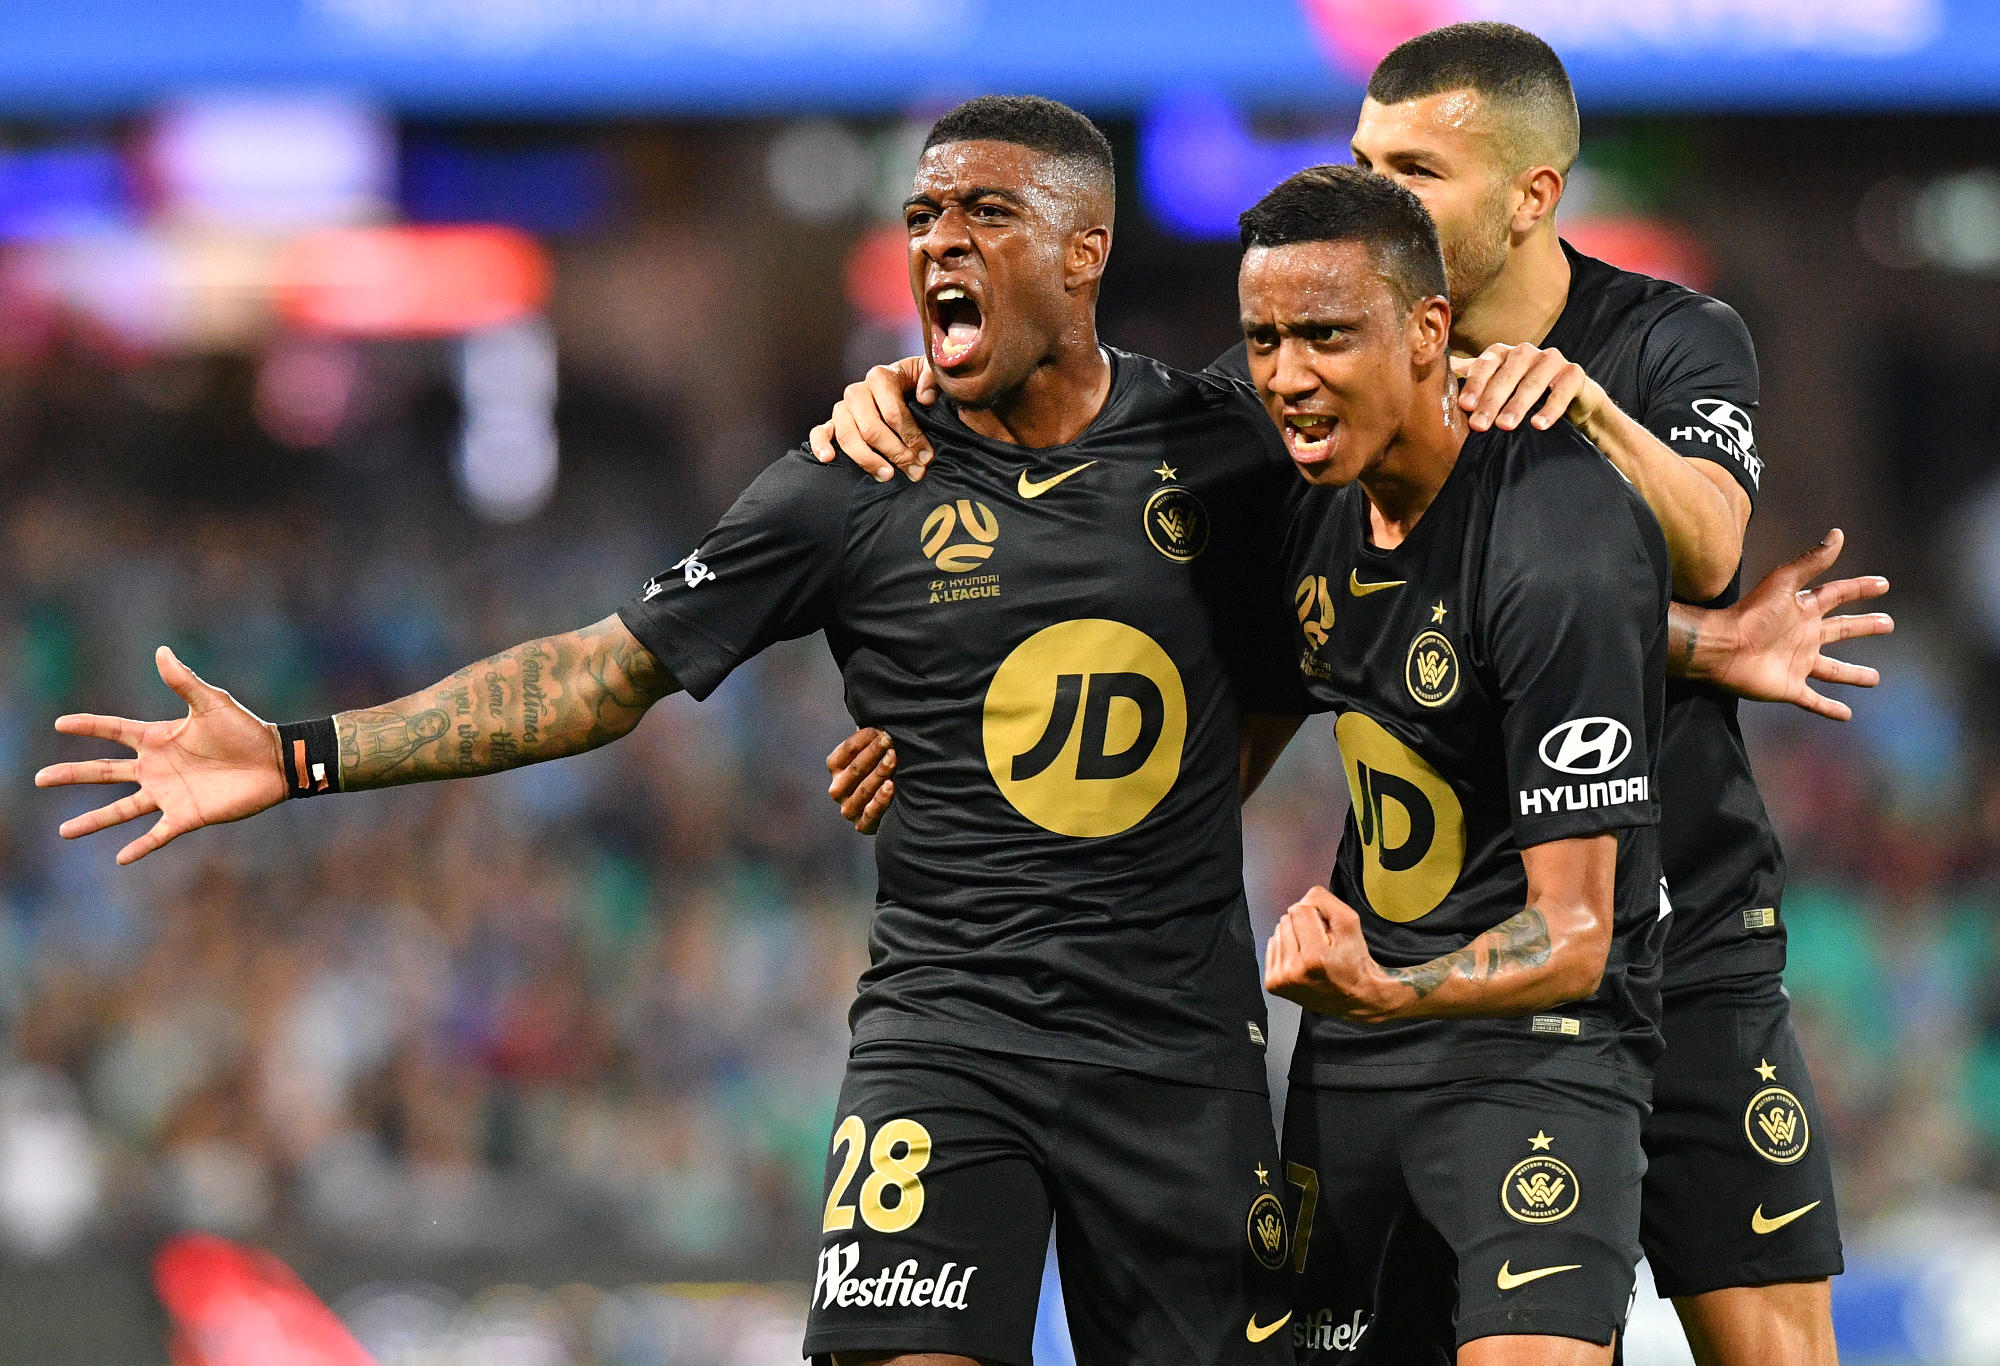 Roly Bonevacia (left) of the Wanderers reacts after scoring